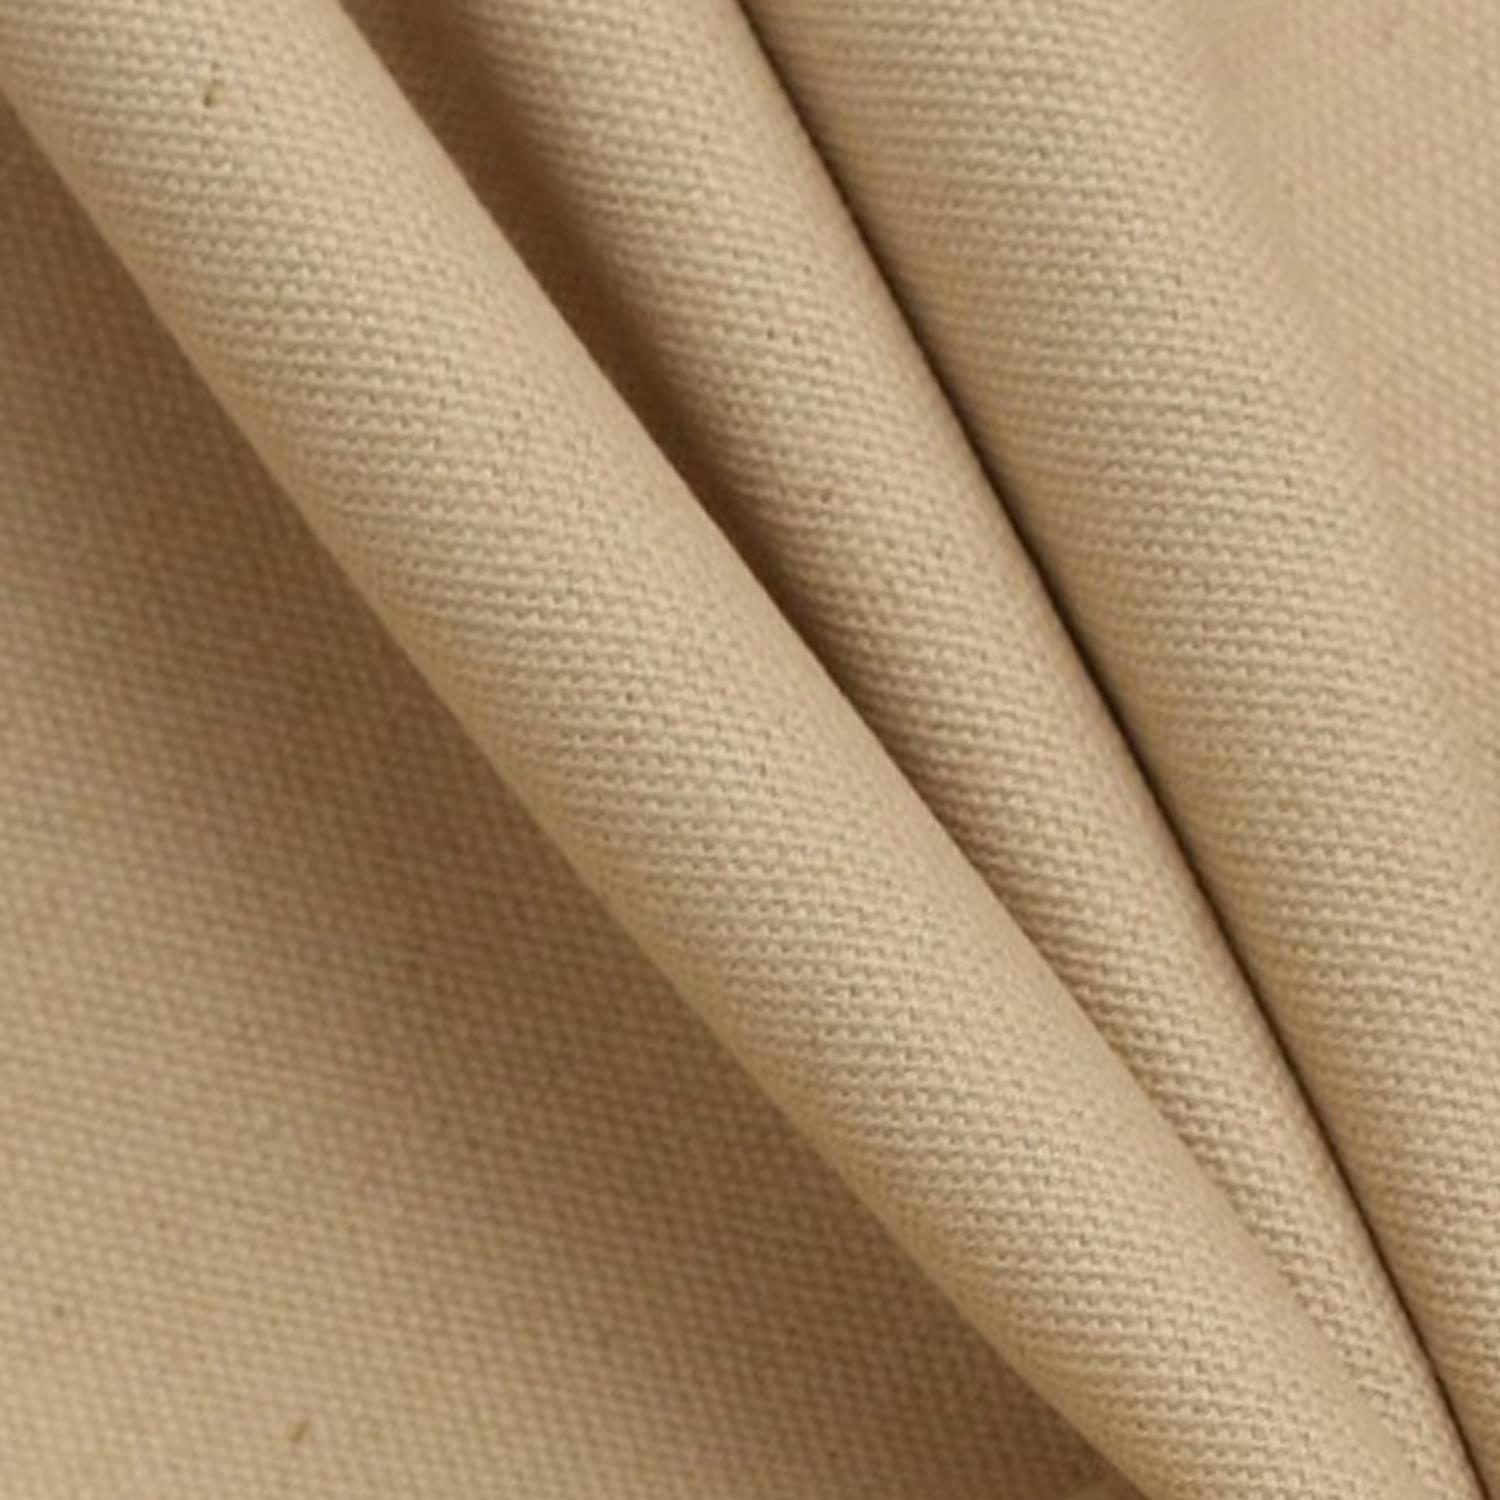 Luxury 100/% Cotton Canvas Fabric Craft Material YELLOW